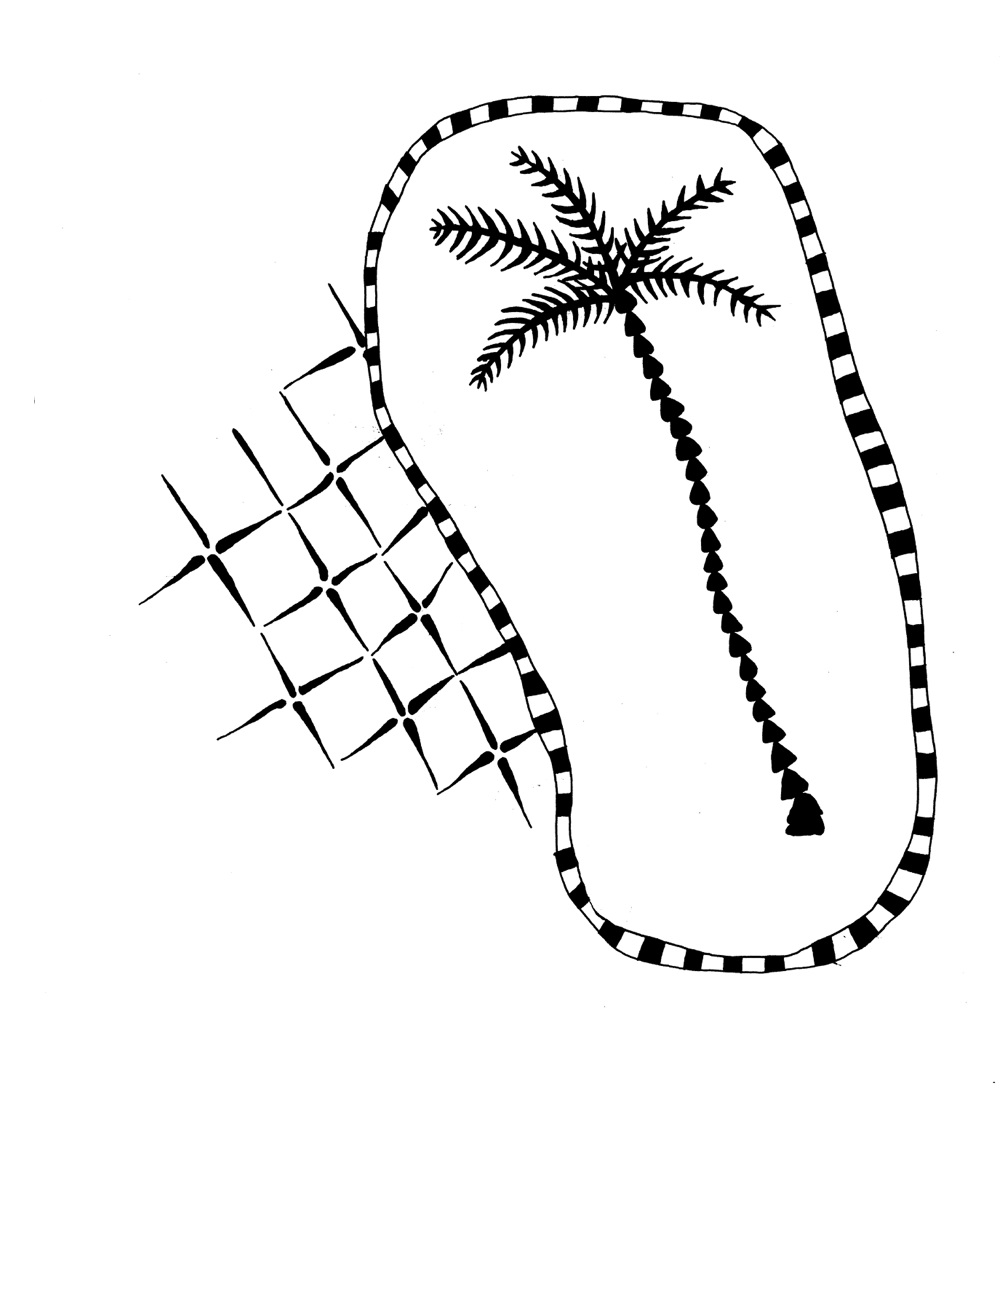 a single line drawing of the thrasher logo